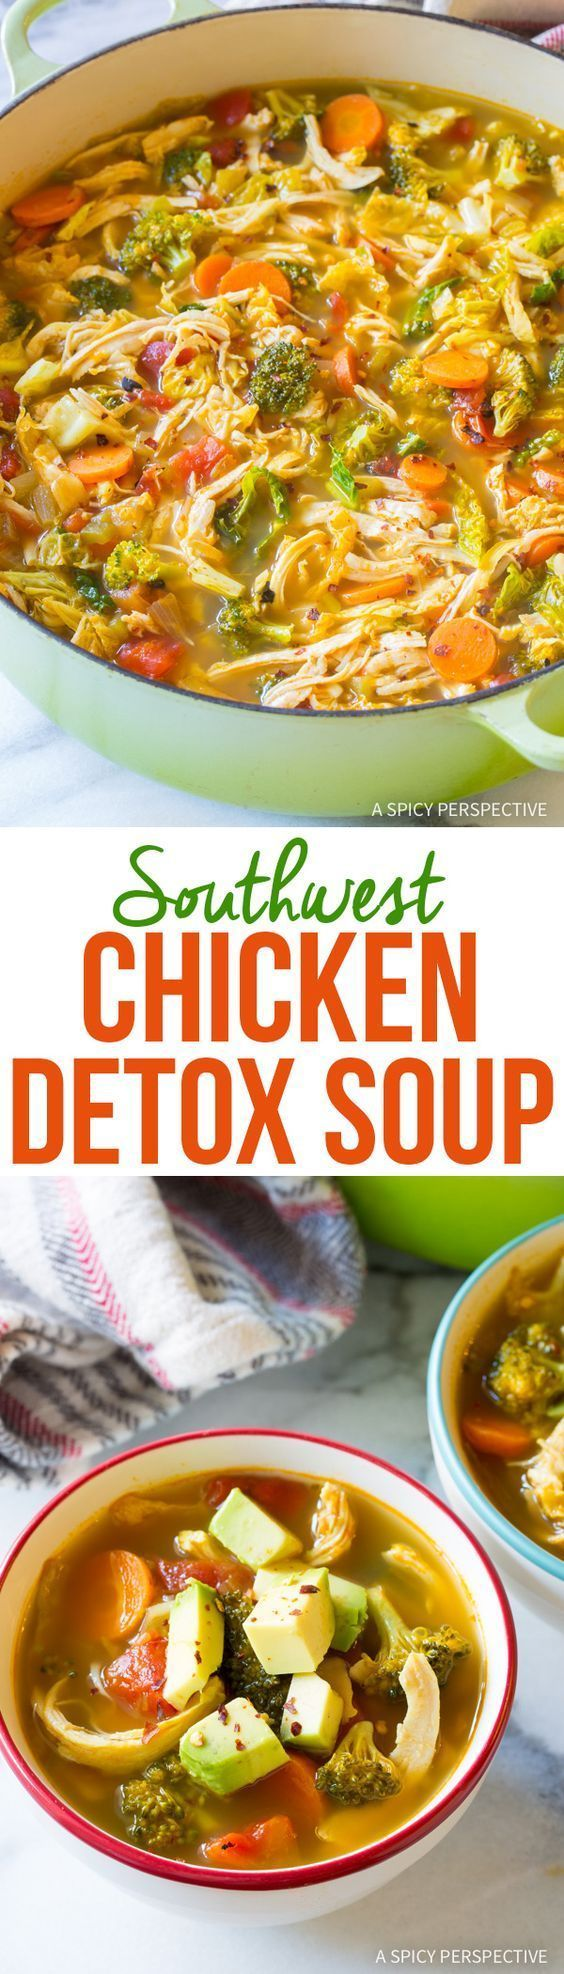 BEST Southwest Chicken Detox Soup Recipe #cleanse #diet via @spicyperspectiv